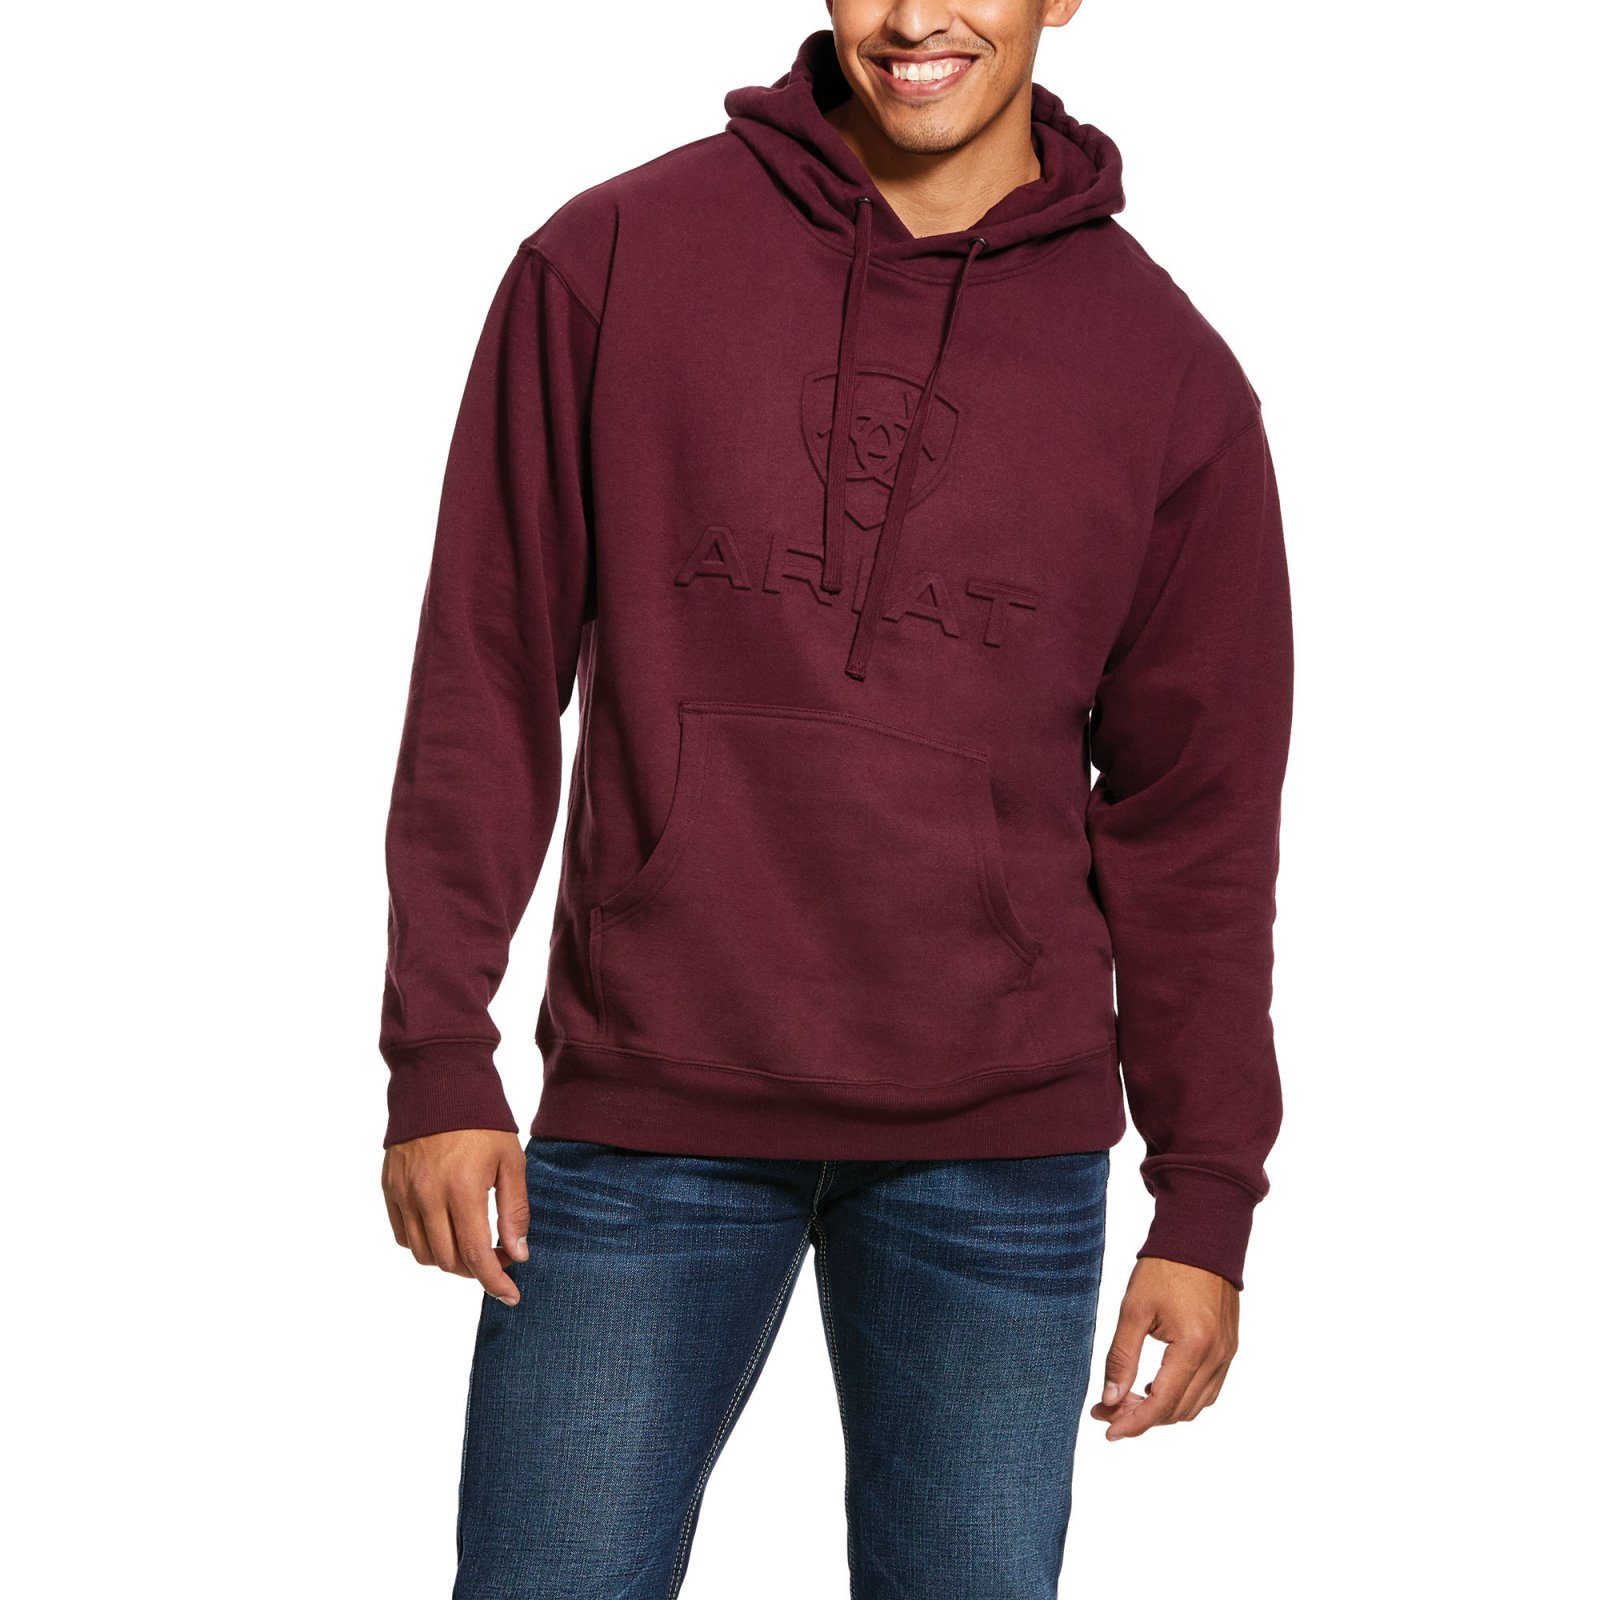 Branded Hoodie from Ariat